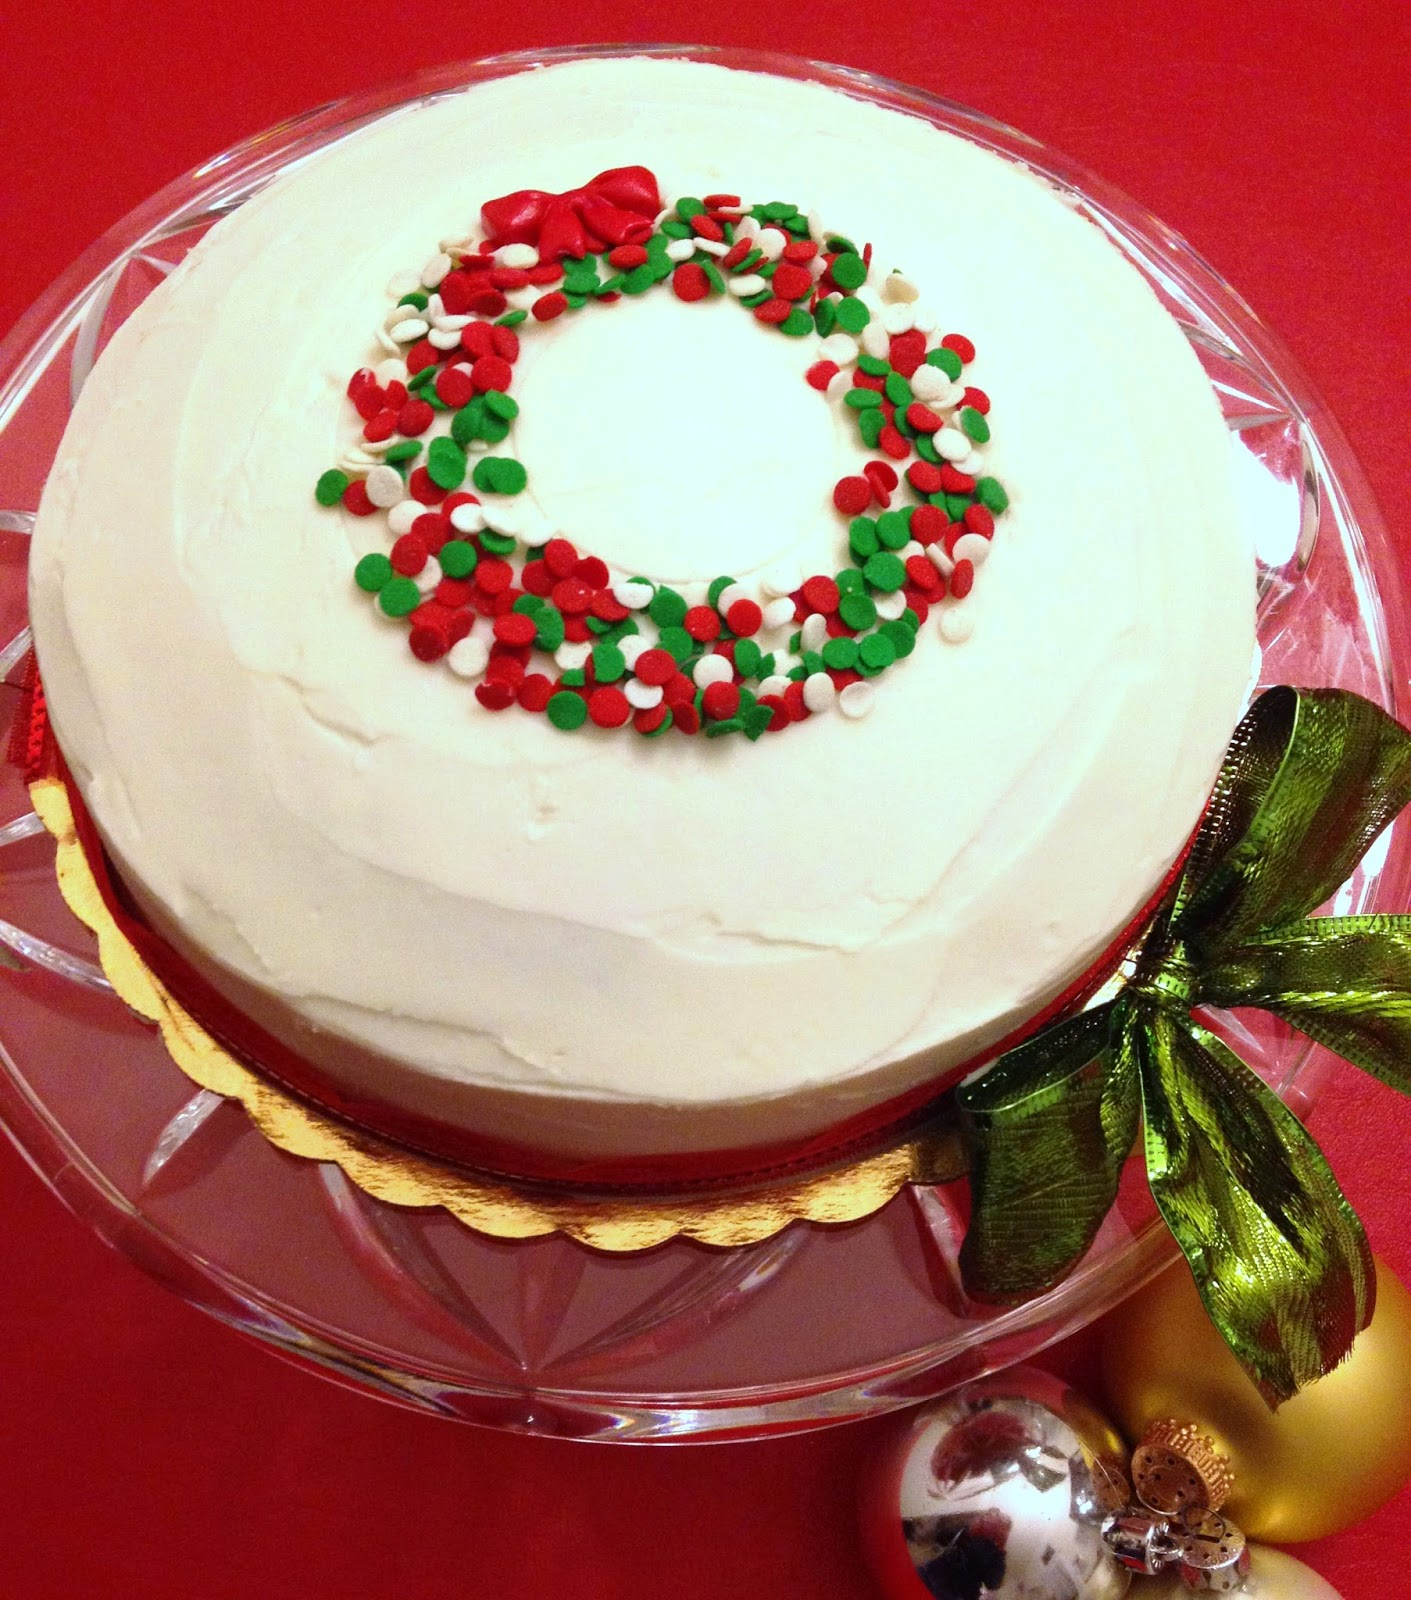 Introducing The Famous 3 Ingredient Christmas Cake Fruit Cake Made